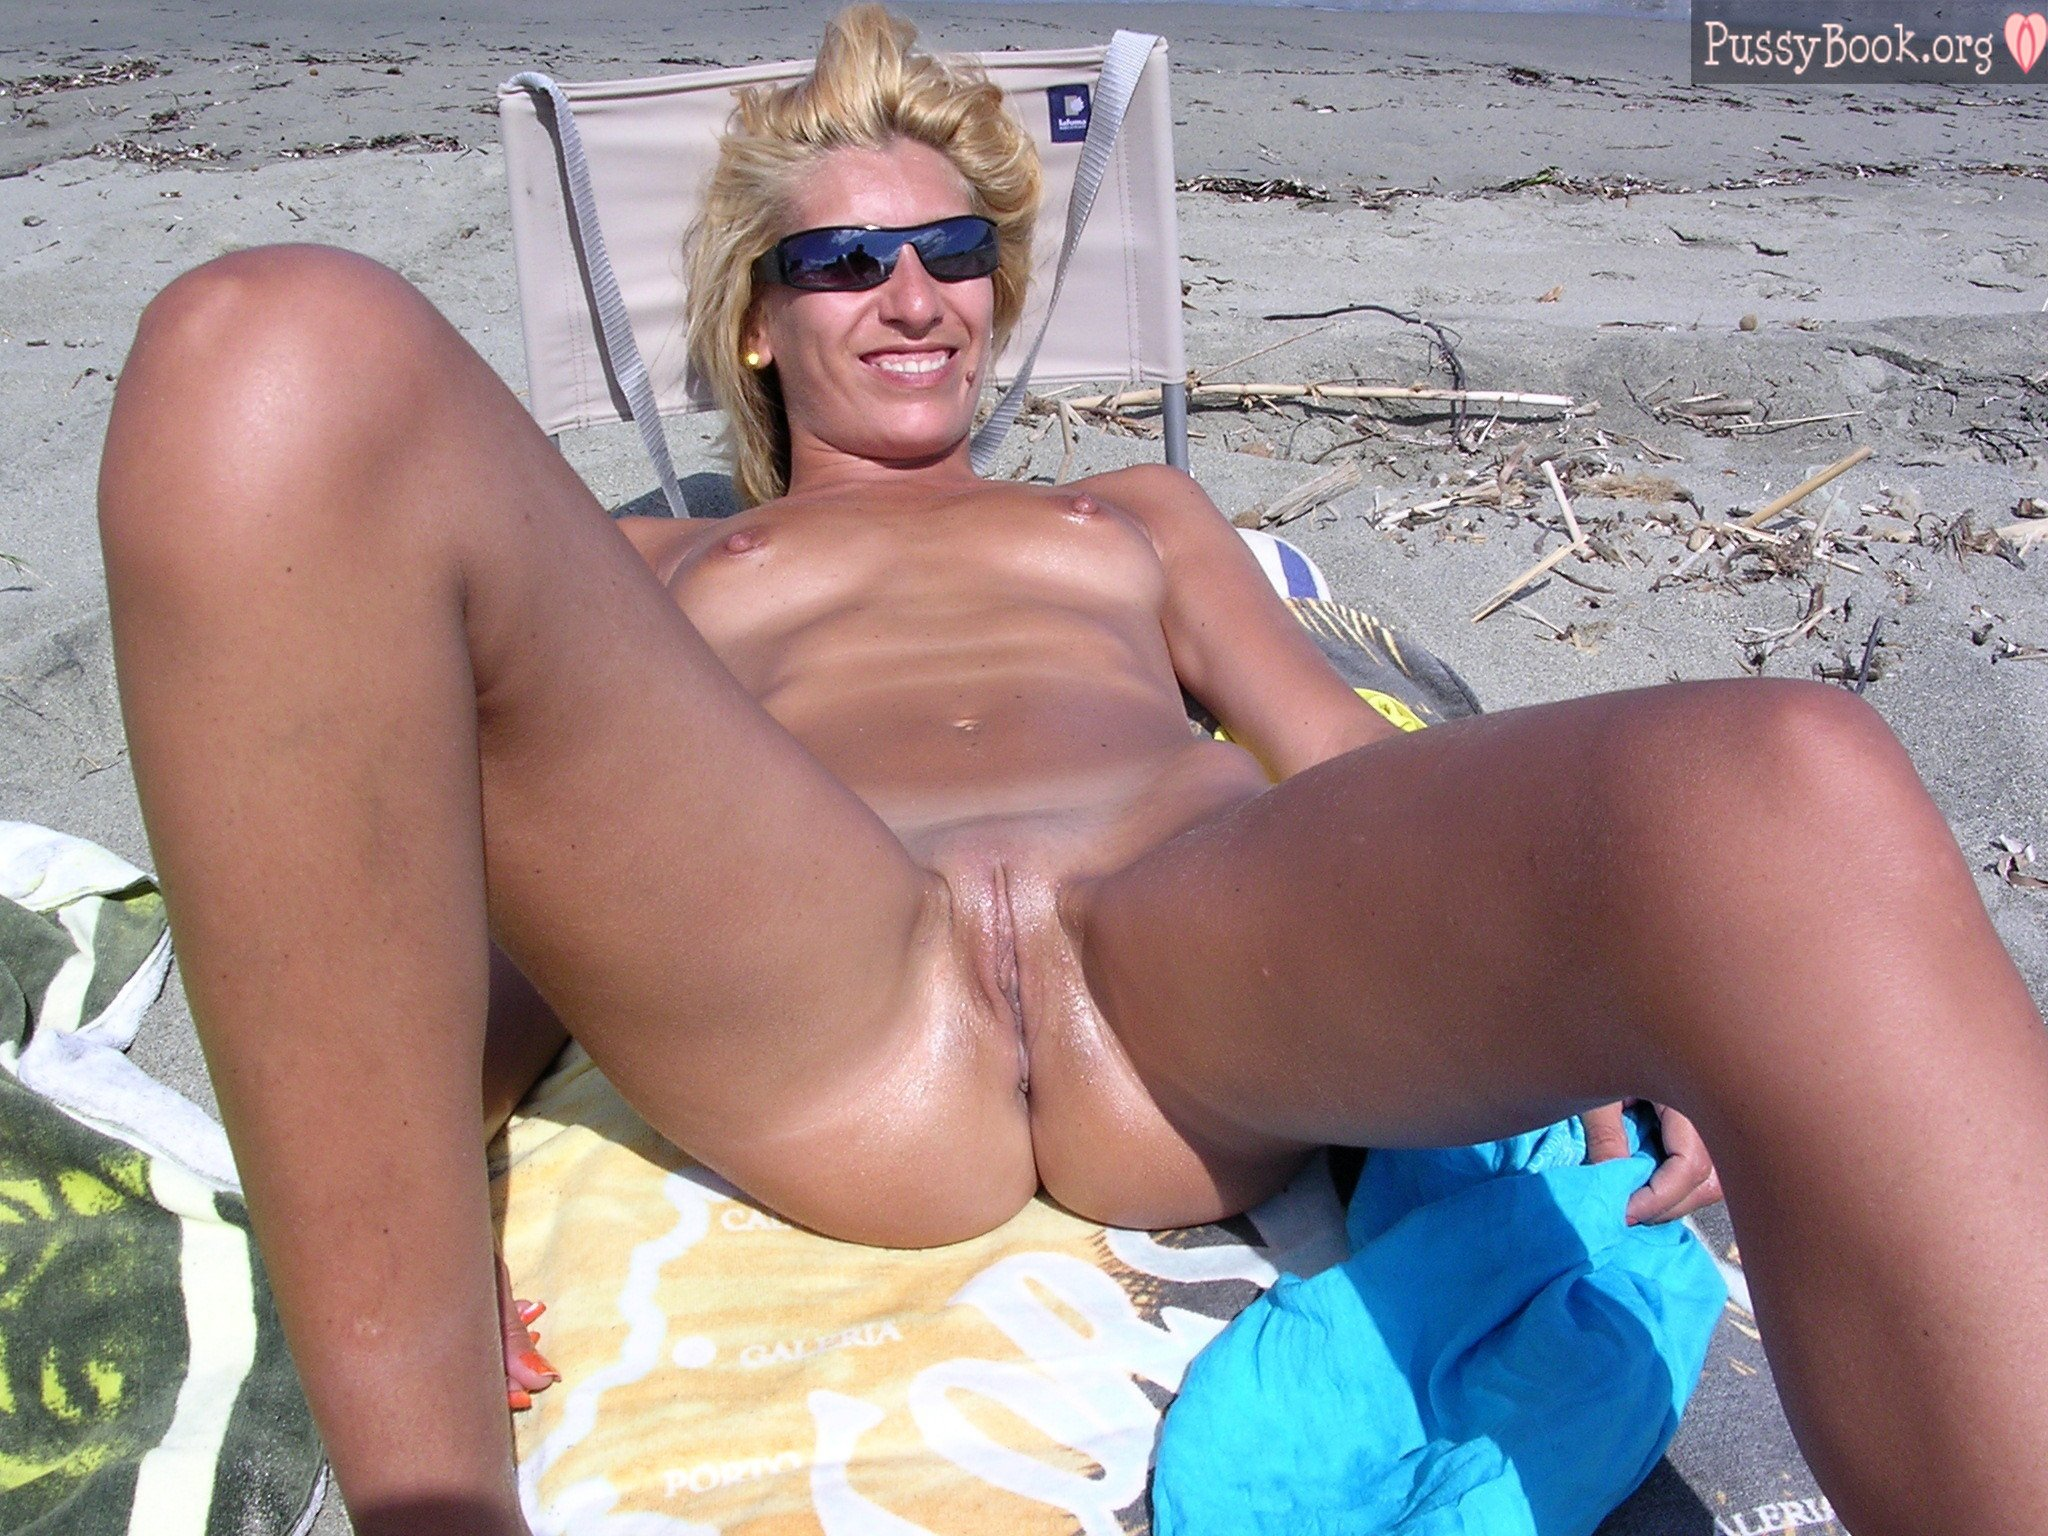 Nudist-Wife-Spreading-Legs-On-The-Beach  Pussy Pictures -6589